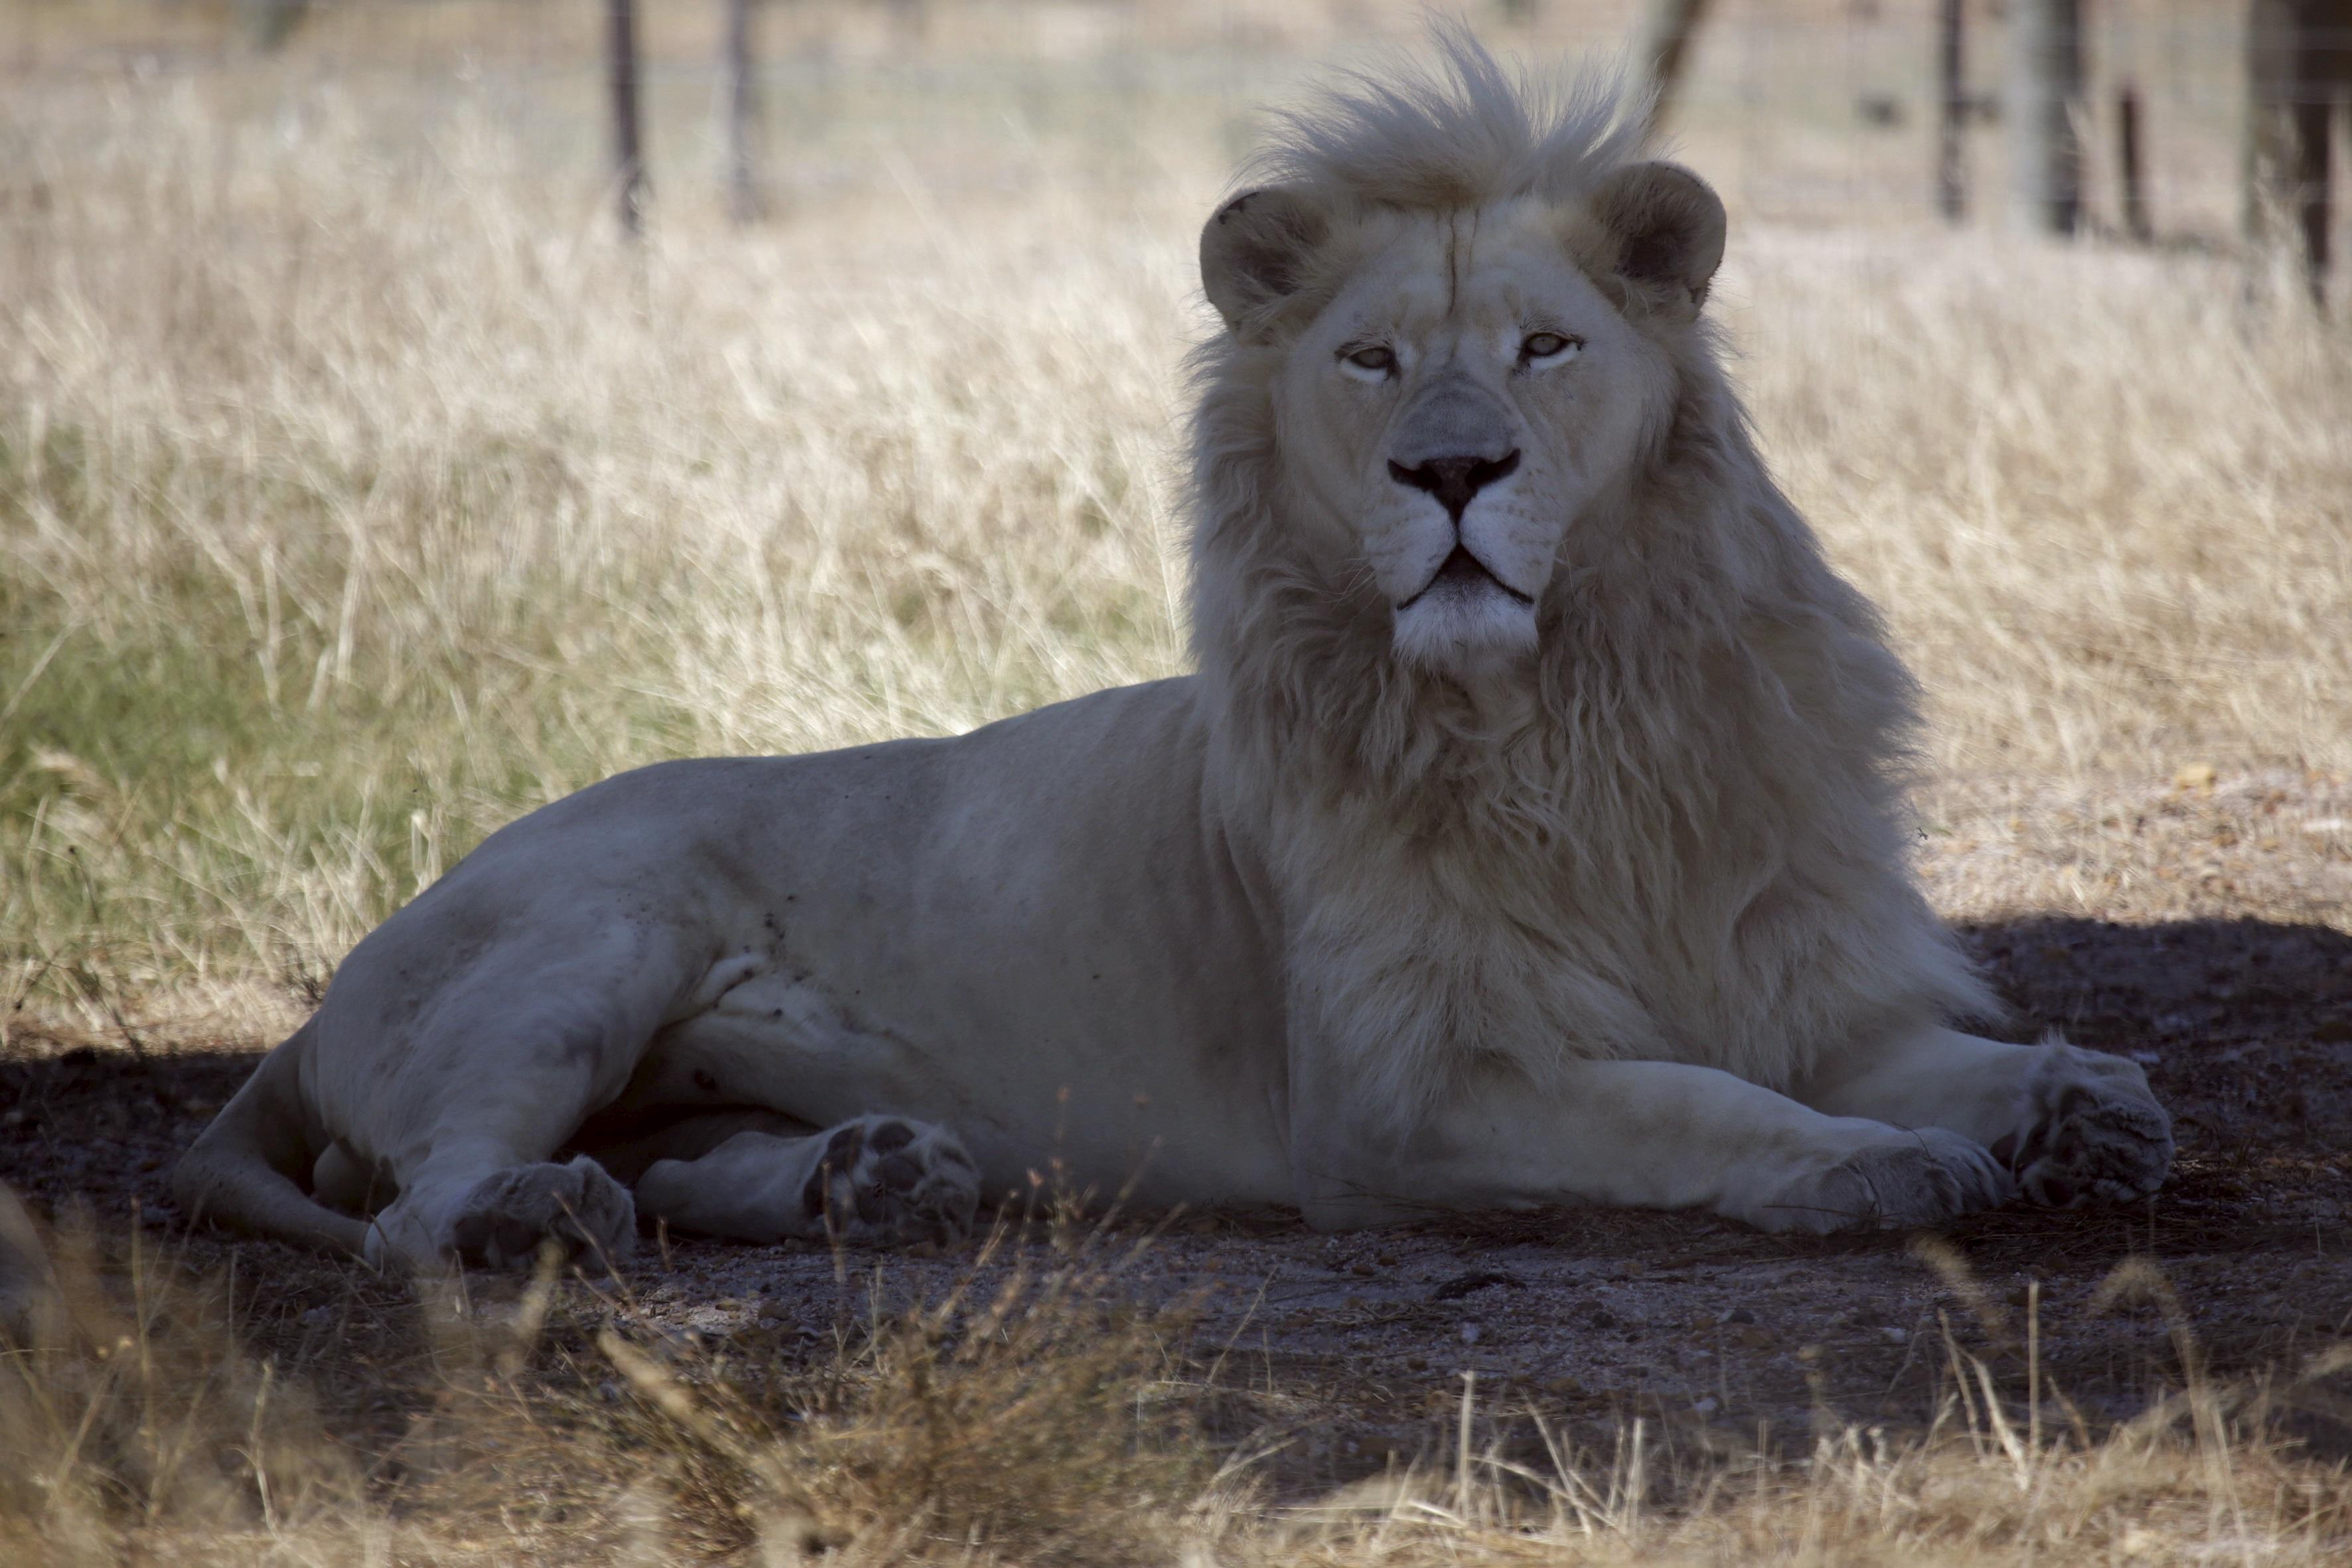 Lions Kill and Eat Suspected Poacher, Leaving Only 'His Head and Some Remains'